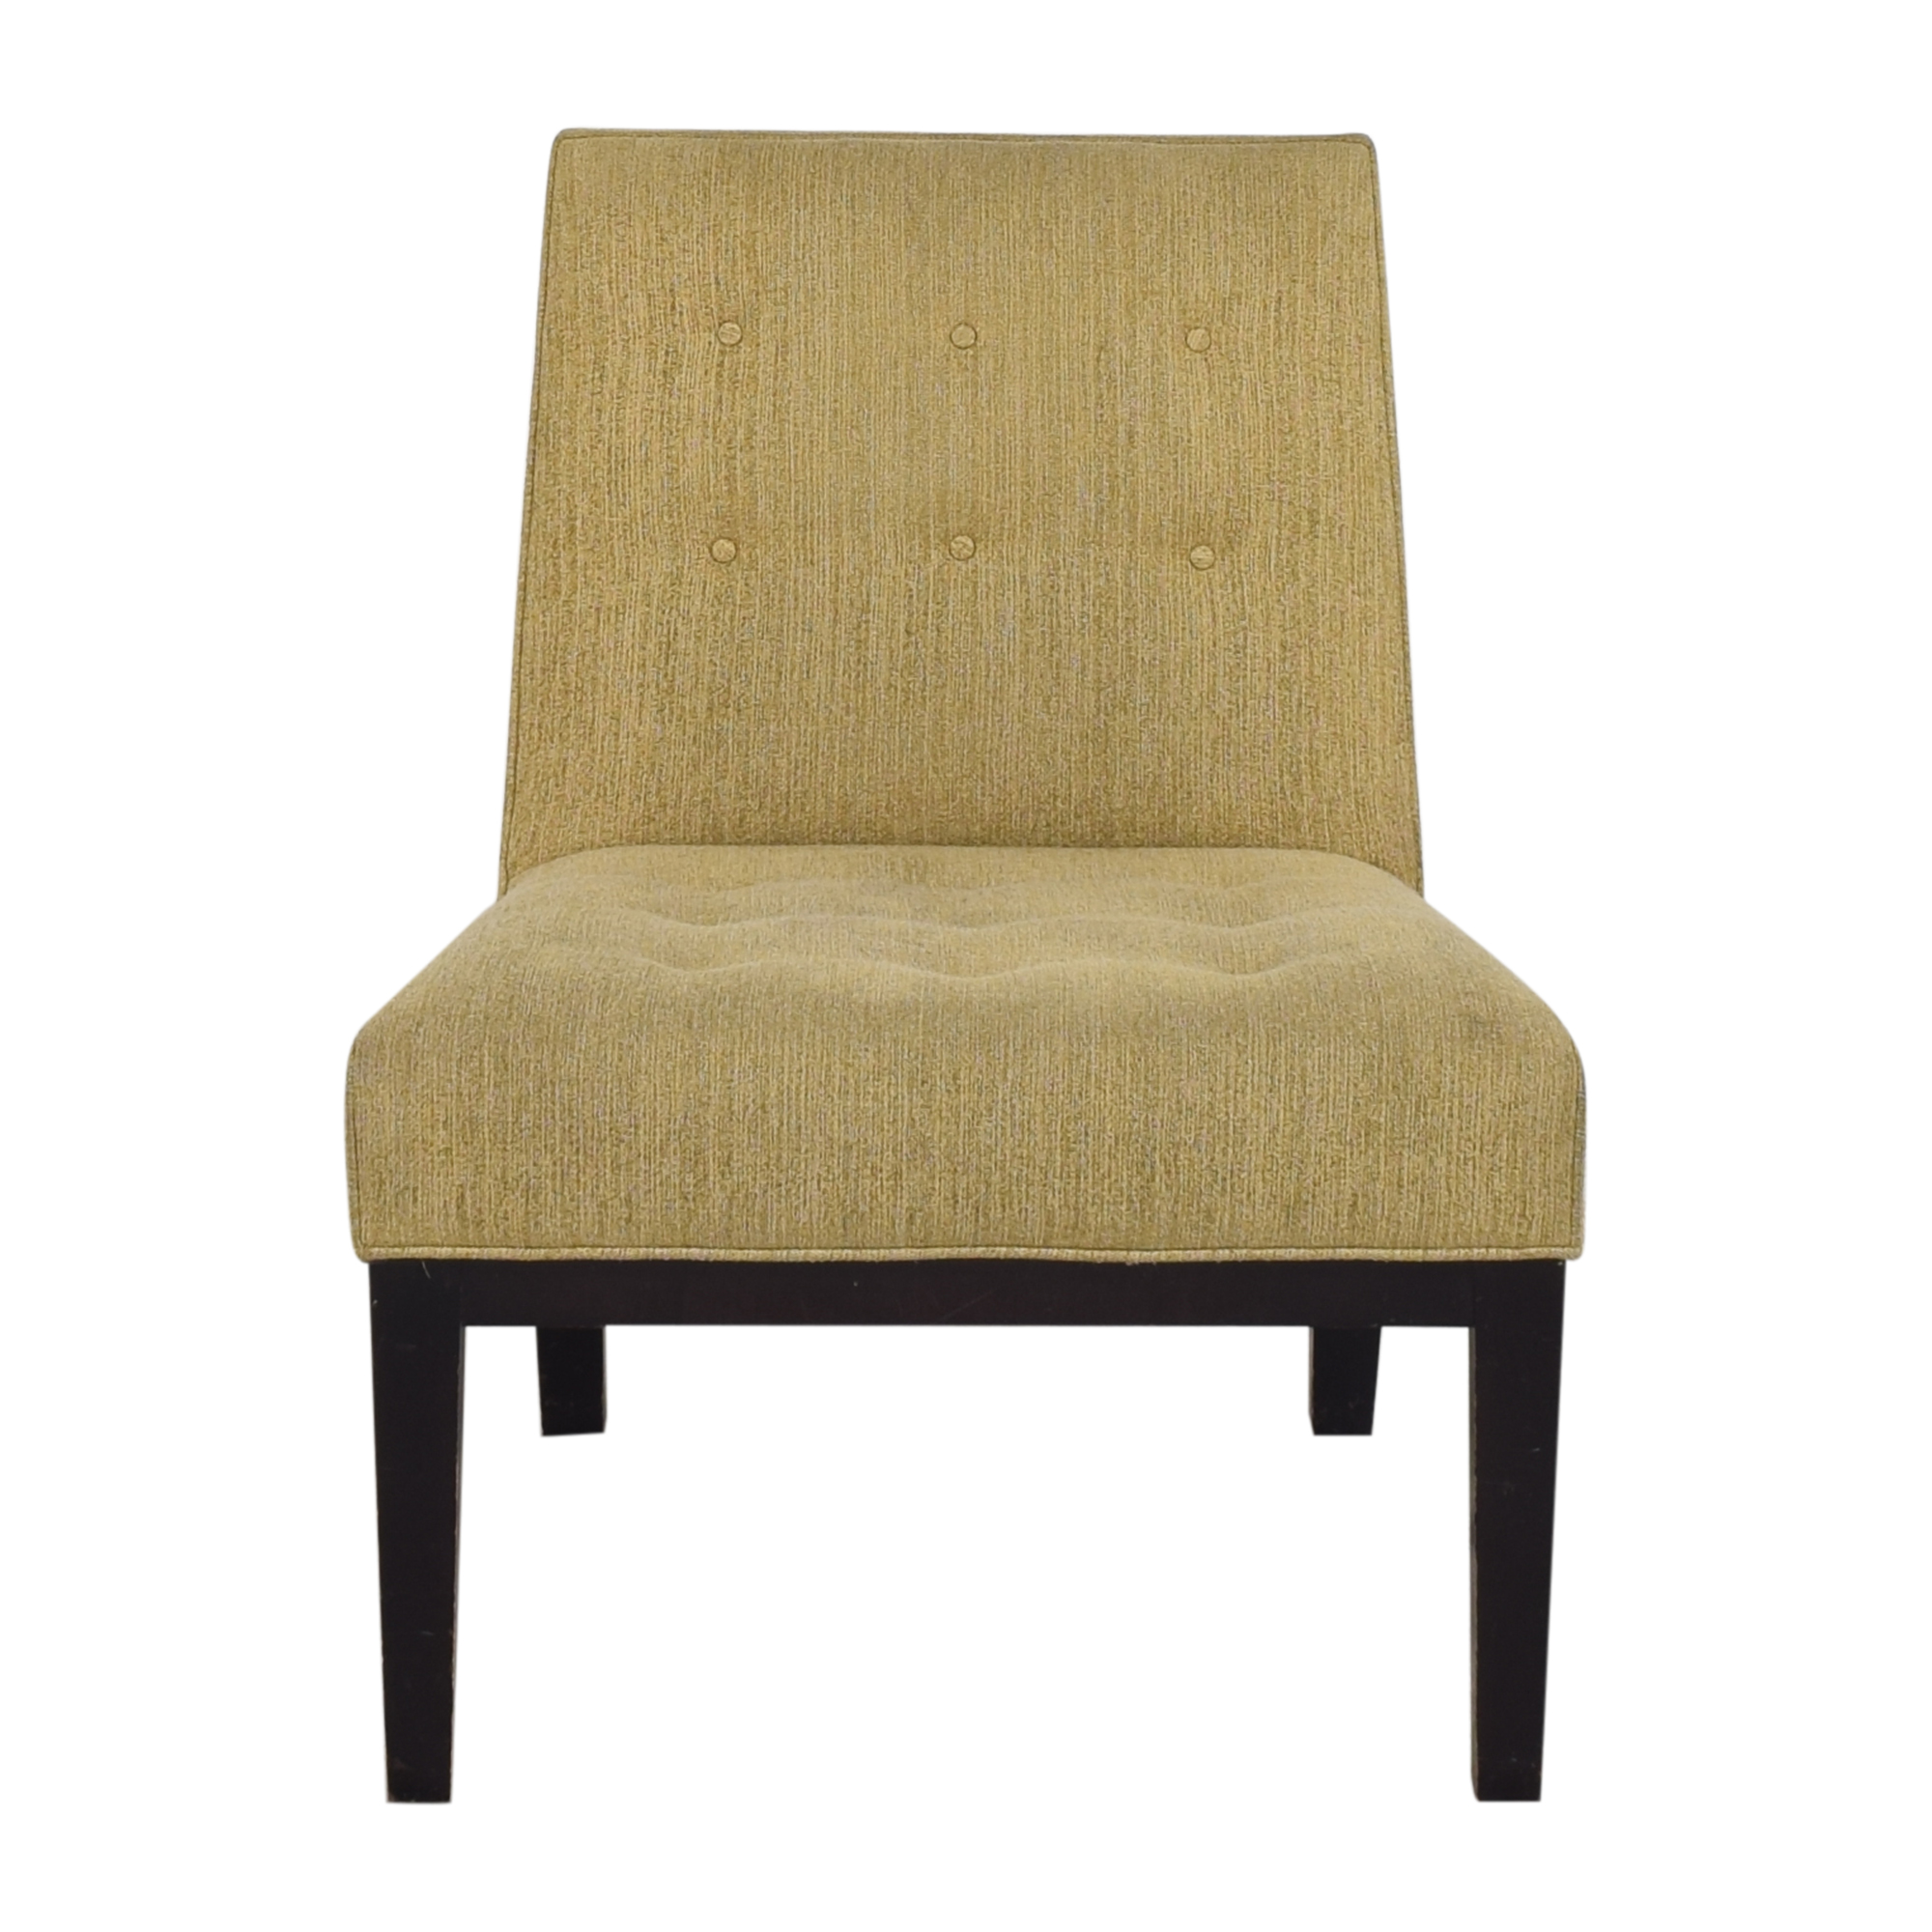 Room & Board Room & Board Tufted Slipper Chair coupon